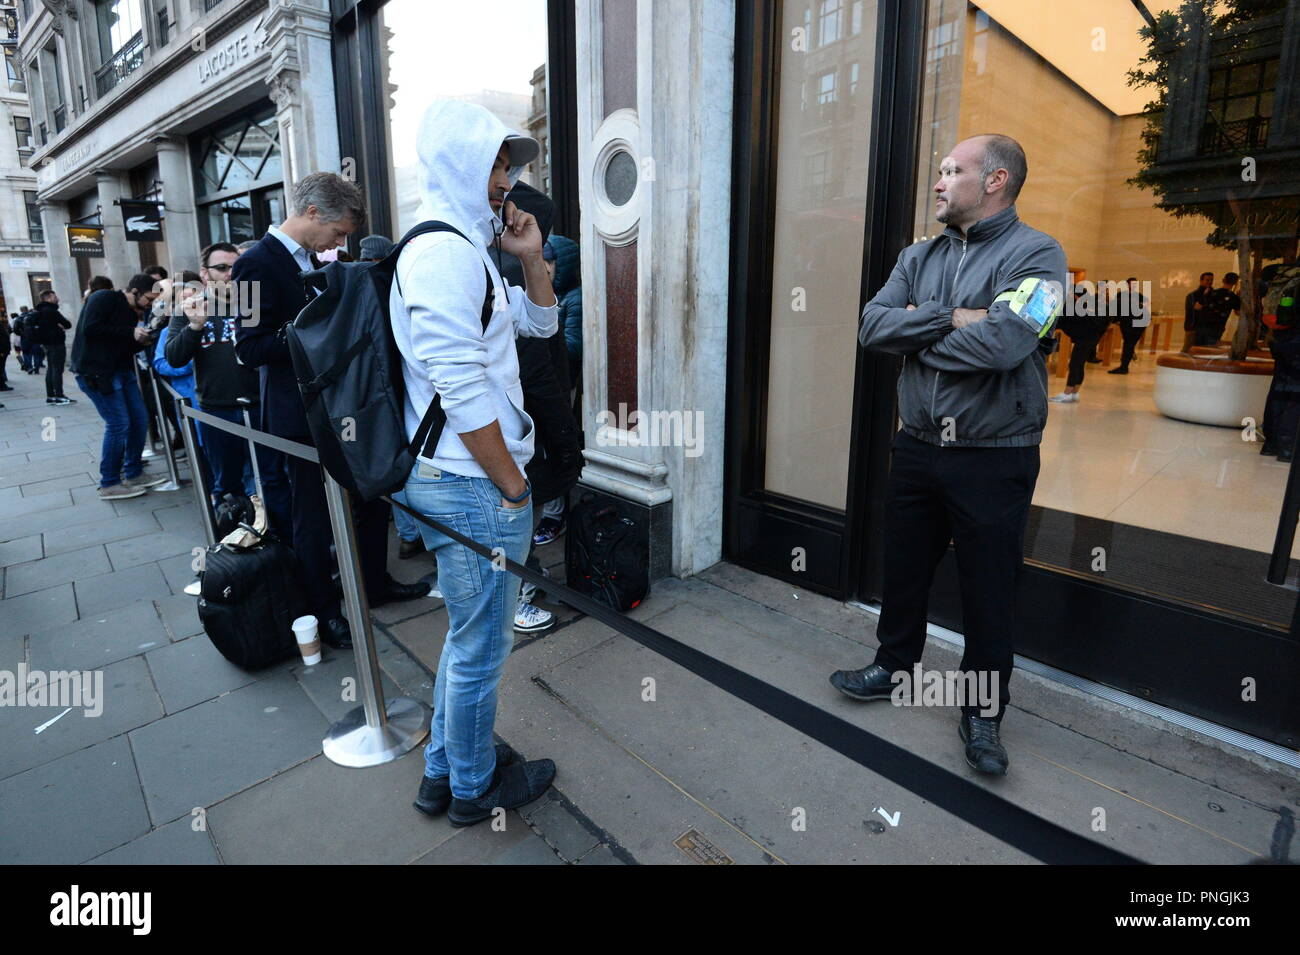 Customers queue outside the Apple Store in Regent Street, central London, as the iPhone XS and XS Max go on sale in the UK for the first time, alongside the Apple Watch Series 4. - Stock Image